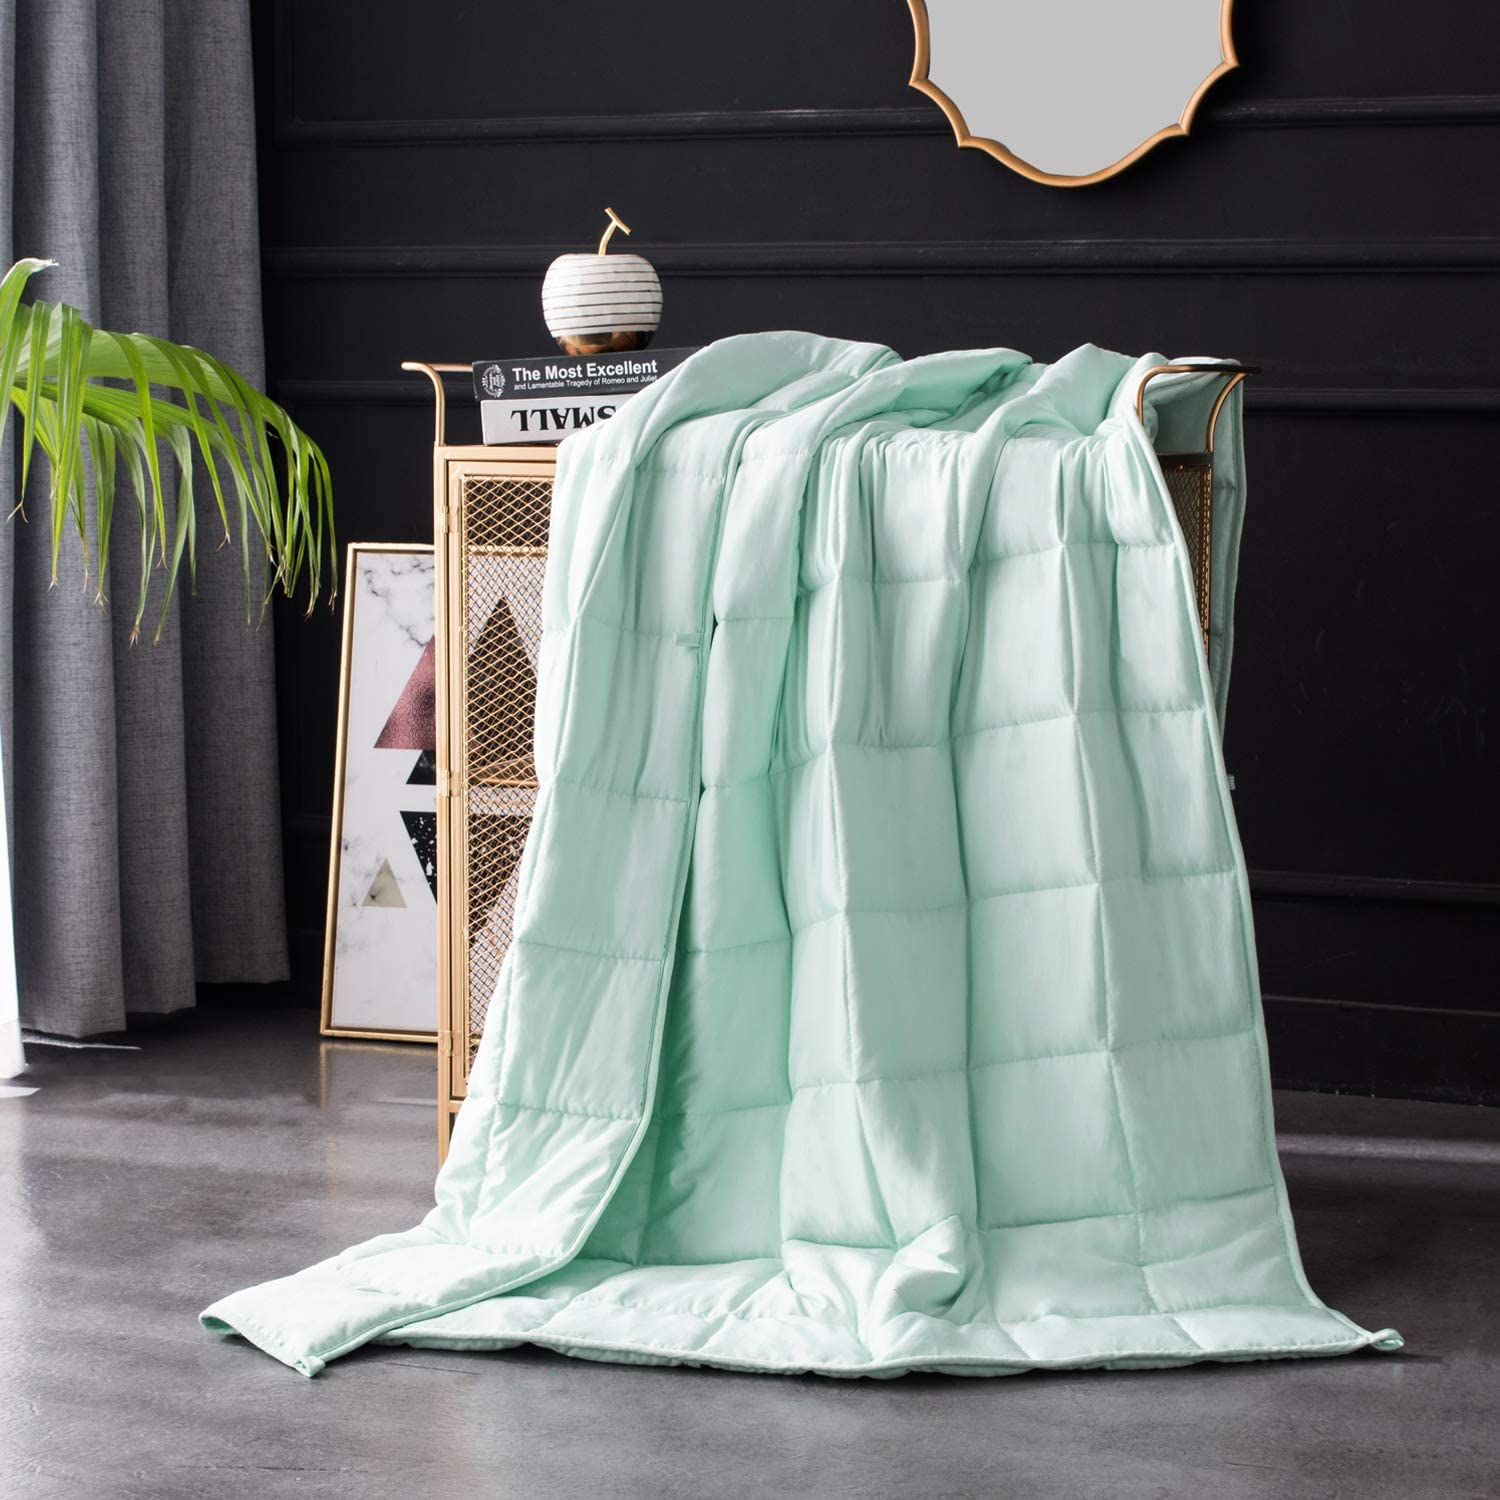 Maple Down Summer Cooling Weighted Blanket, Heavy Blanket Cool Bed Blankets Natural Bamboo Viscose Luxury   25lbs, 80x87'', King   Mircro Glass Beads   Mint Green